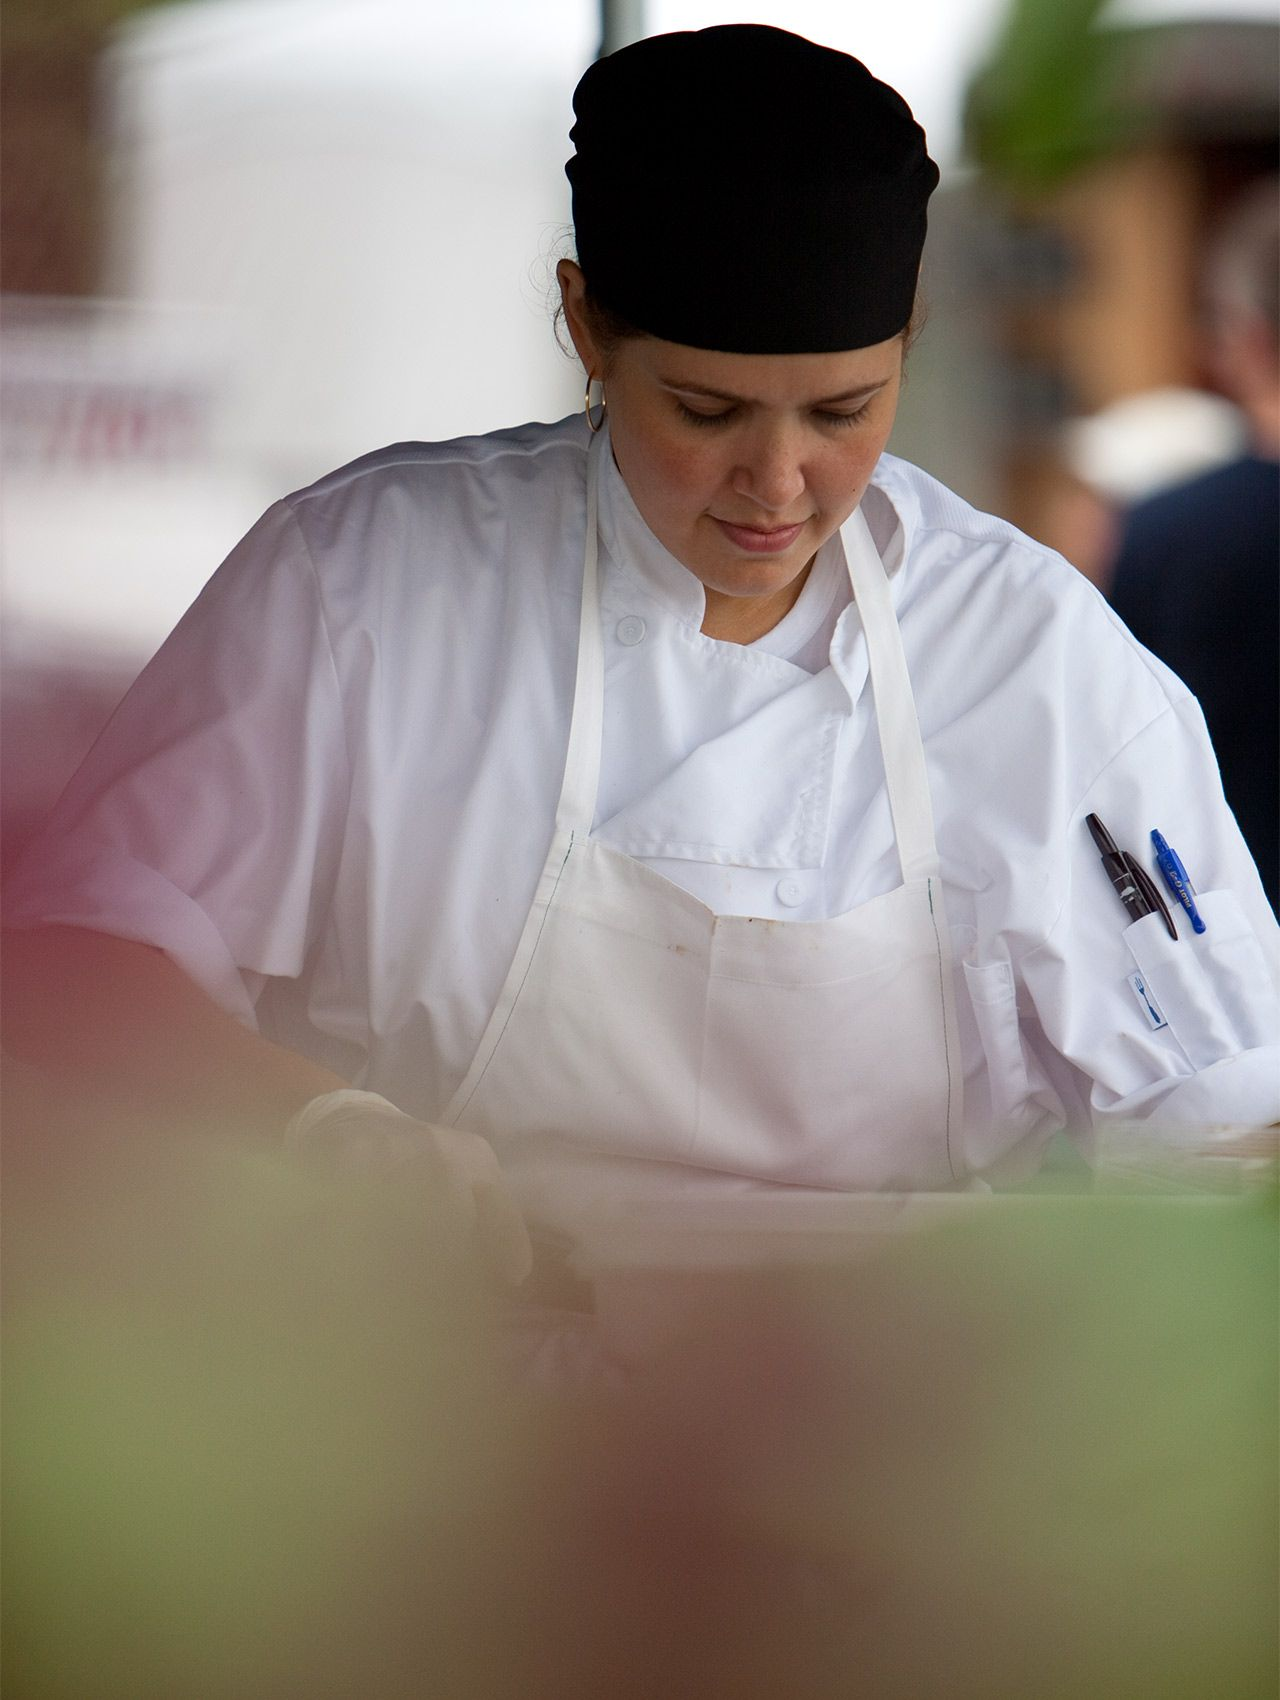 Chef Outstanding in the Field